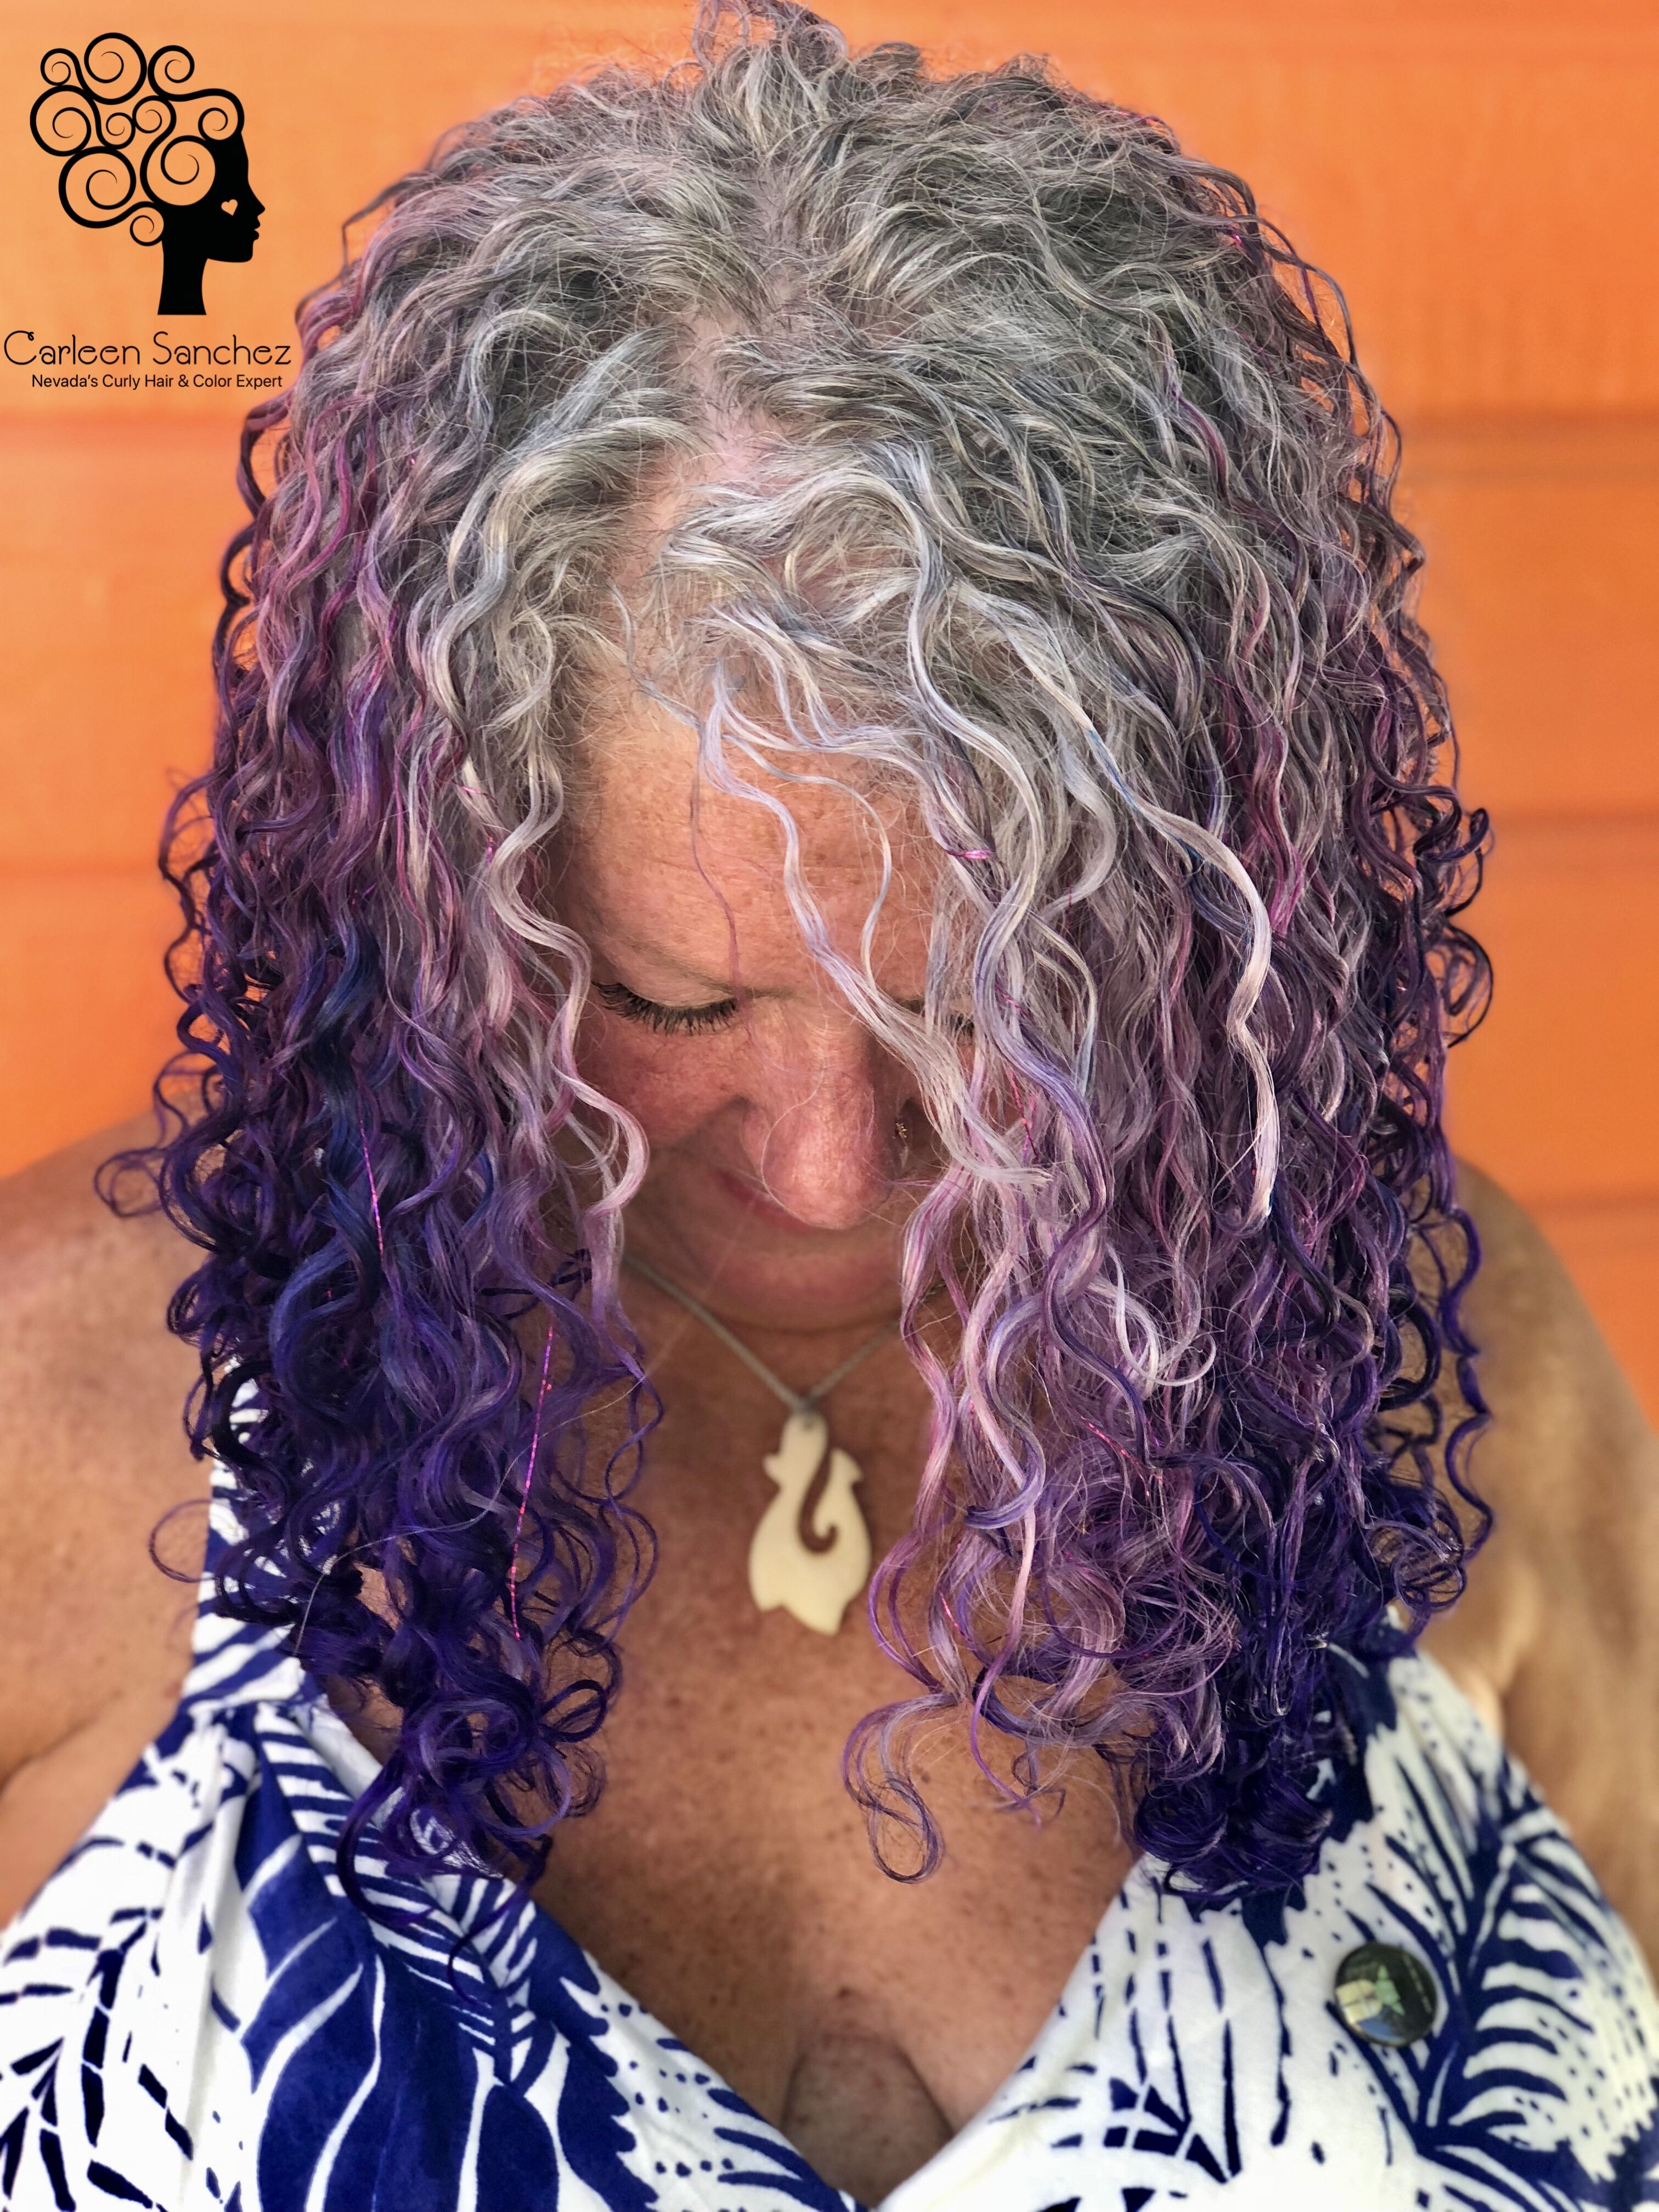 Reverse Ombre Silver Sisters Who Want Shades Of The Rainbow In Their Hair Are So Fun The Hair Oops Haircuts For Curly Hair Curly Hair Styles Naturally